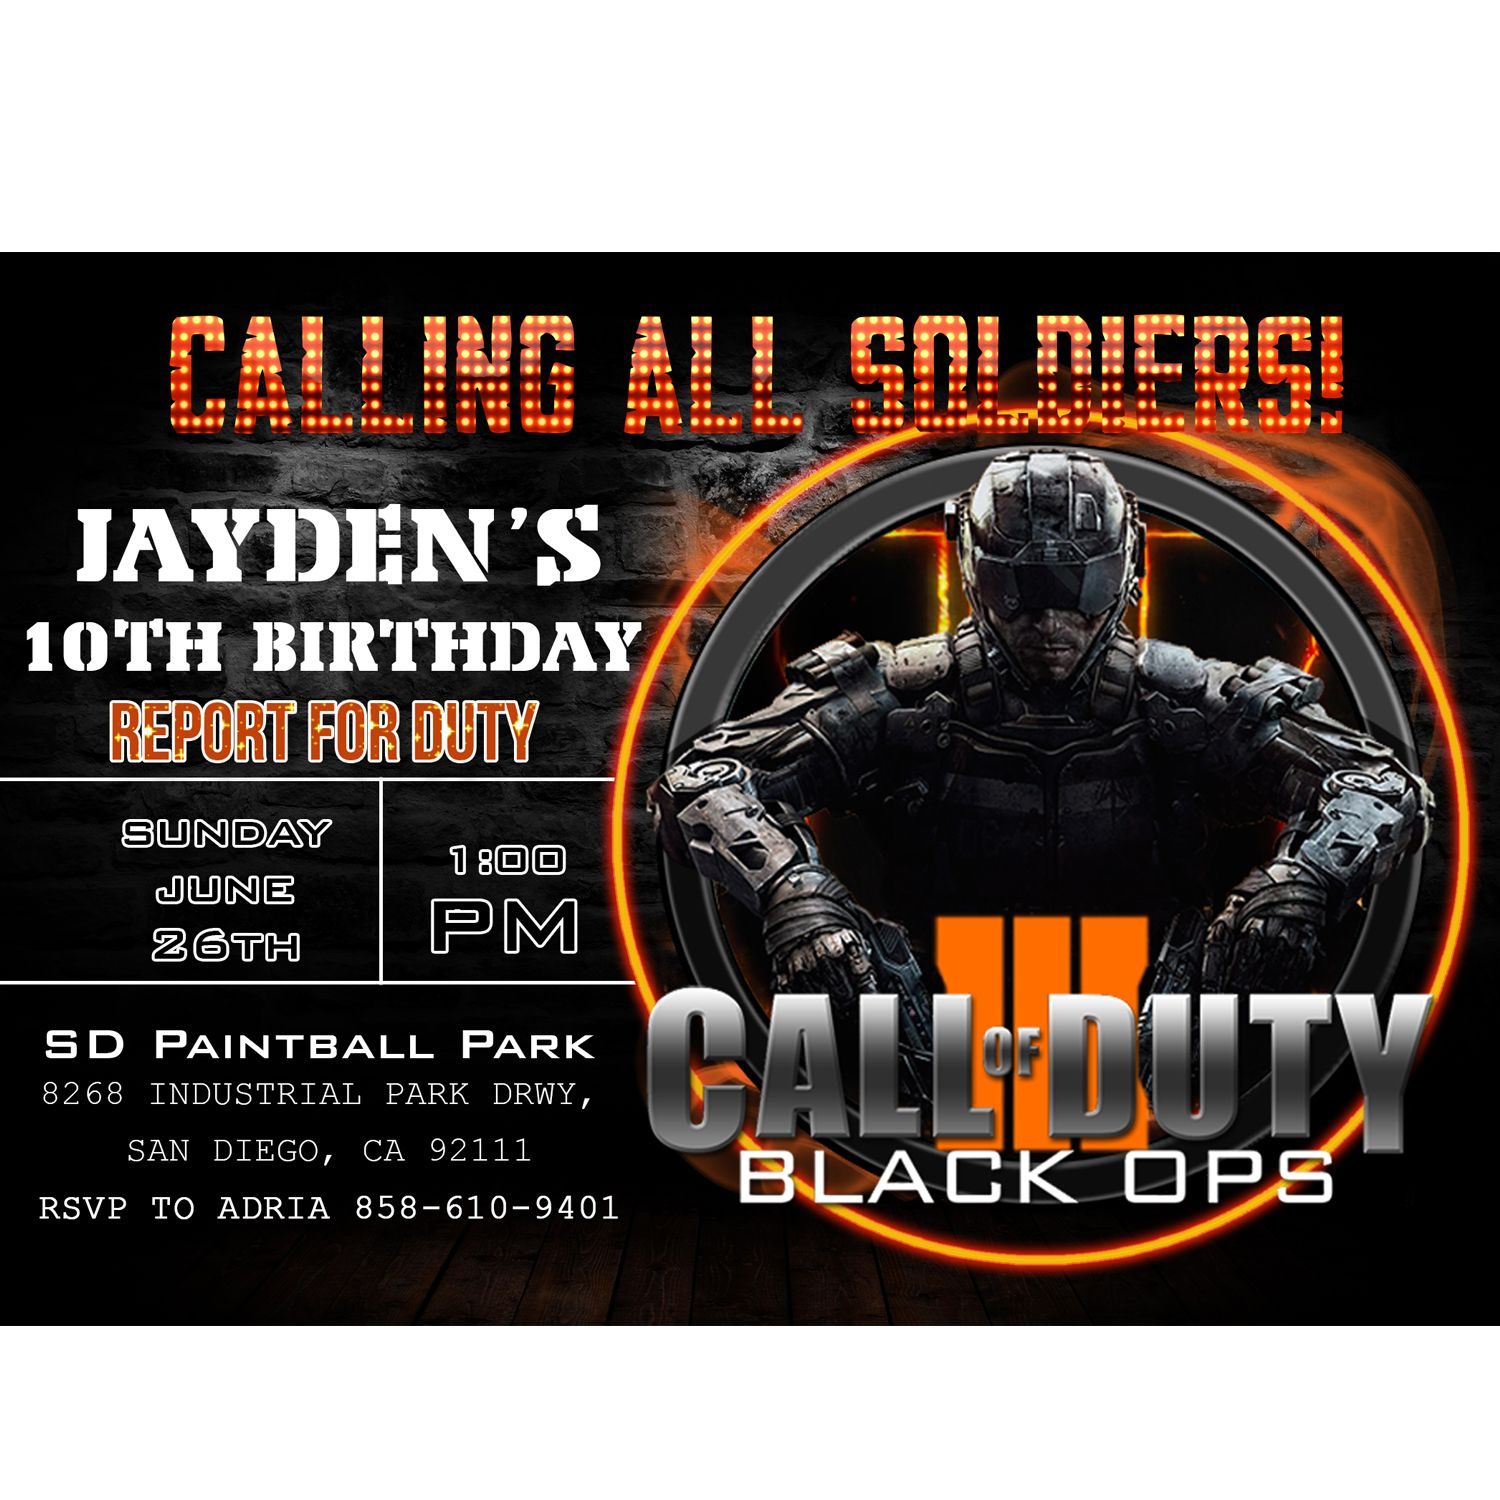 Call of duty invitation call of duty birthday invitation call of call of duty birthday invitation call of duty filmwisefo Image collections